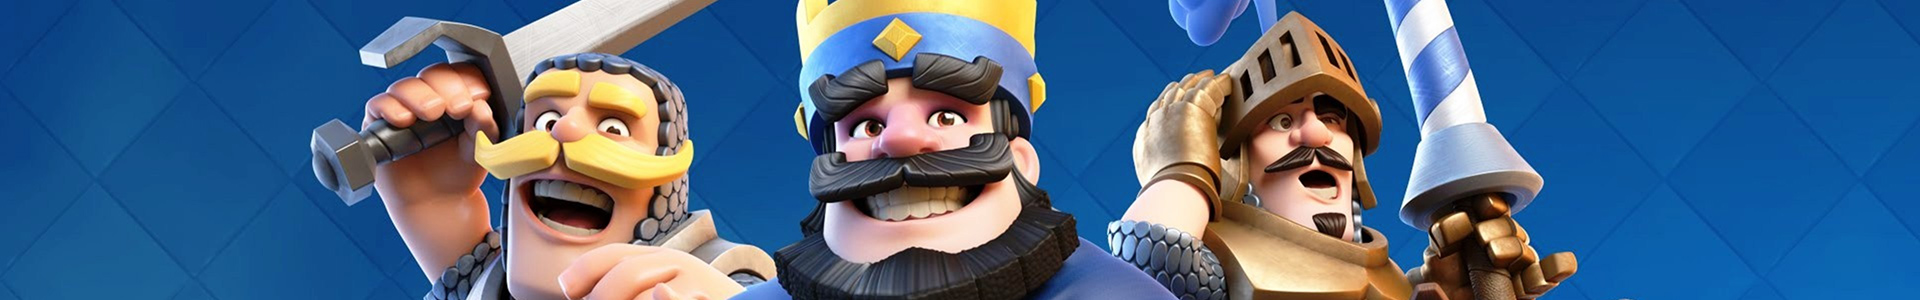 Banner media of Clash Royale video game.